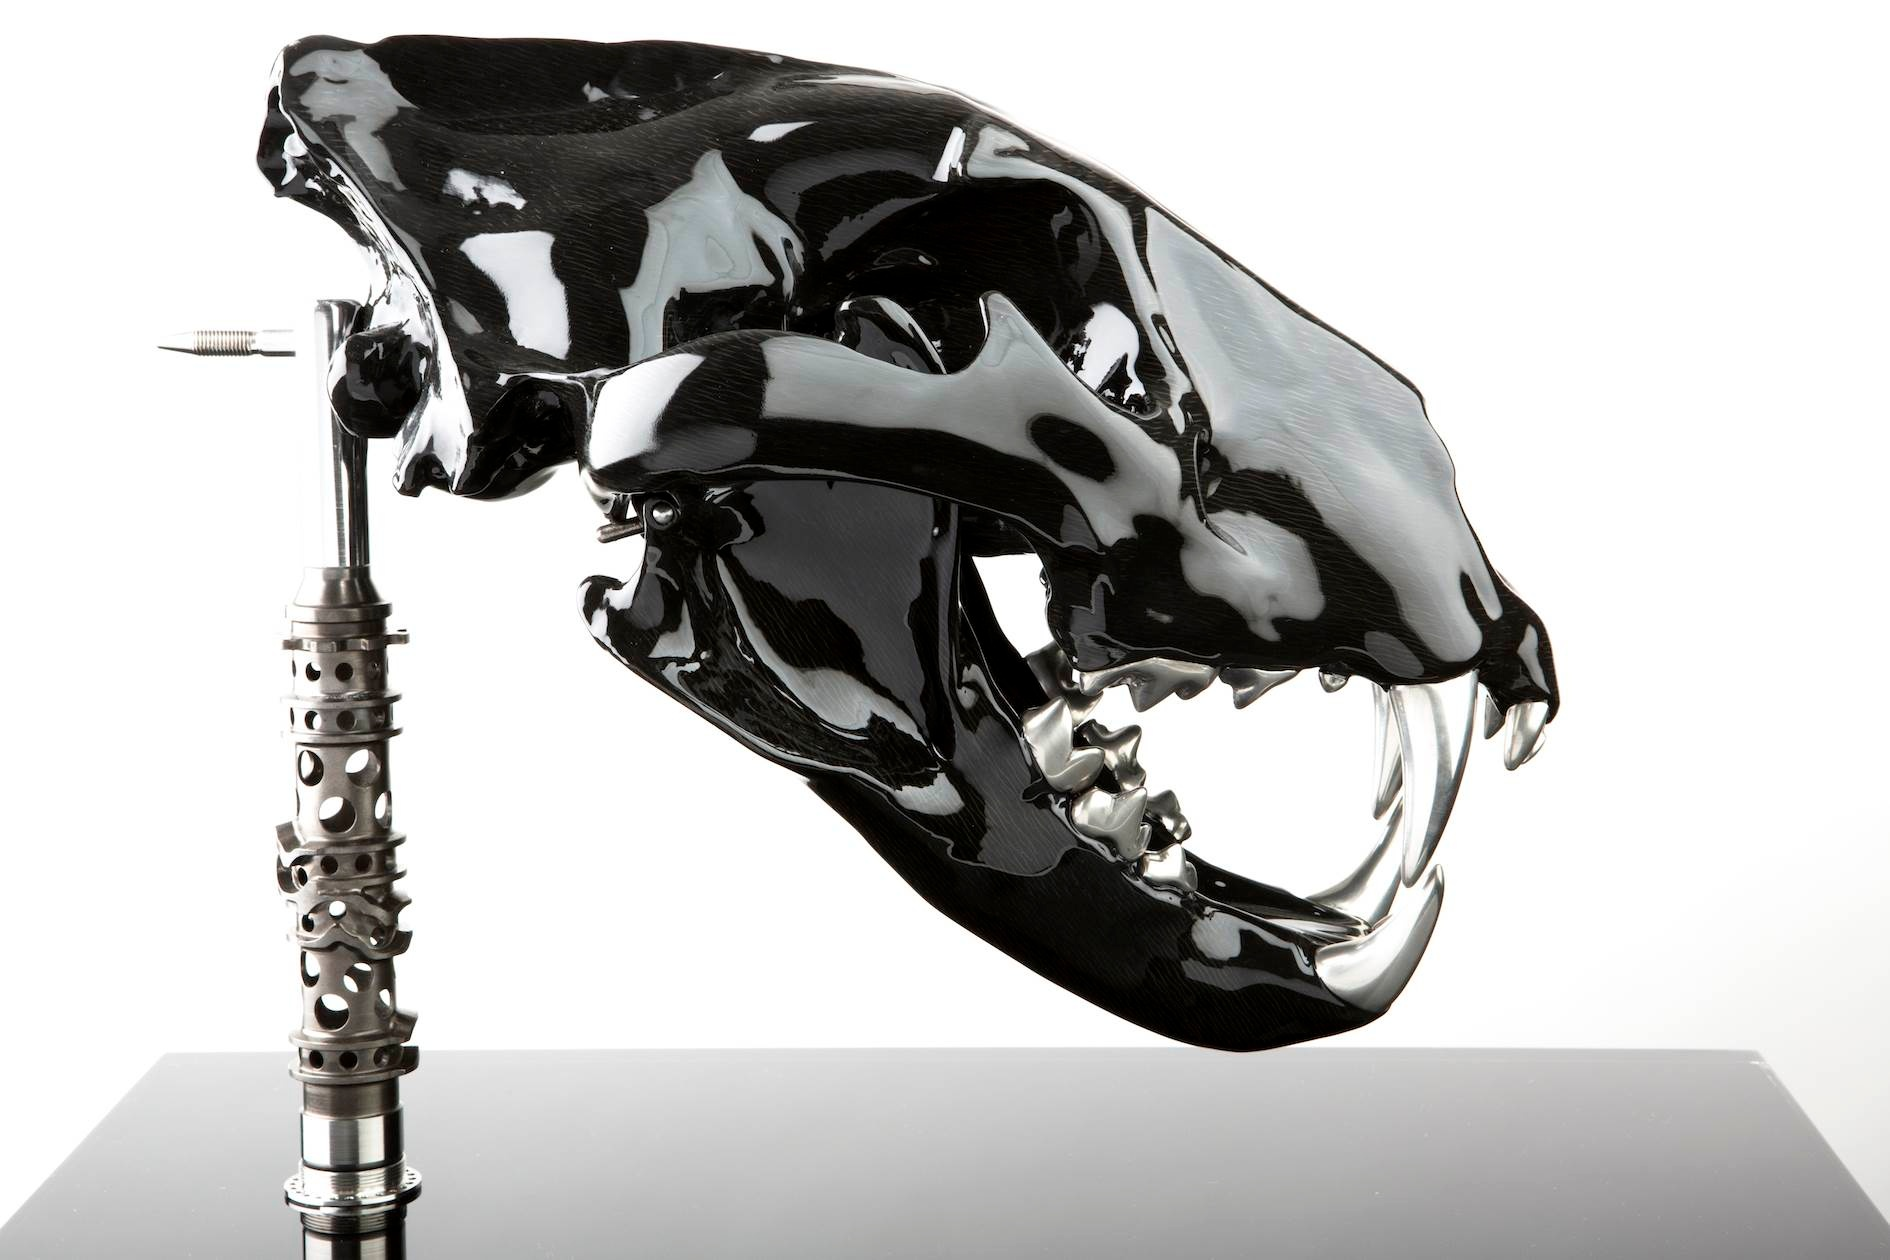 'carbon king' Dimensions: L 390 mm  W 255 mm  H 350 mm  height on stand. Weight: 8.5 kg